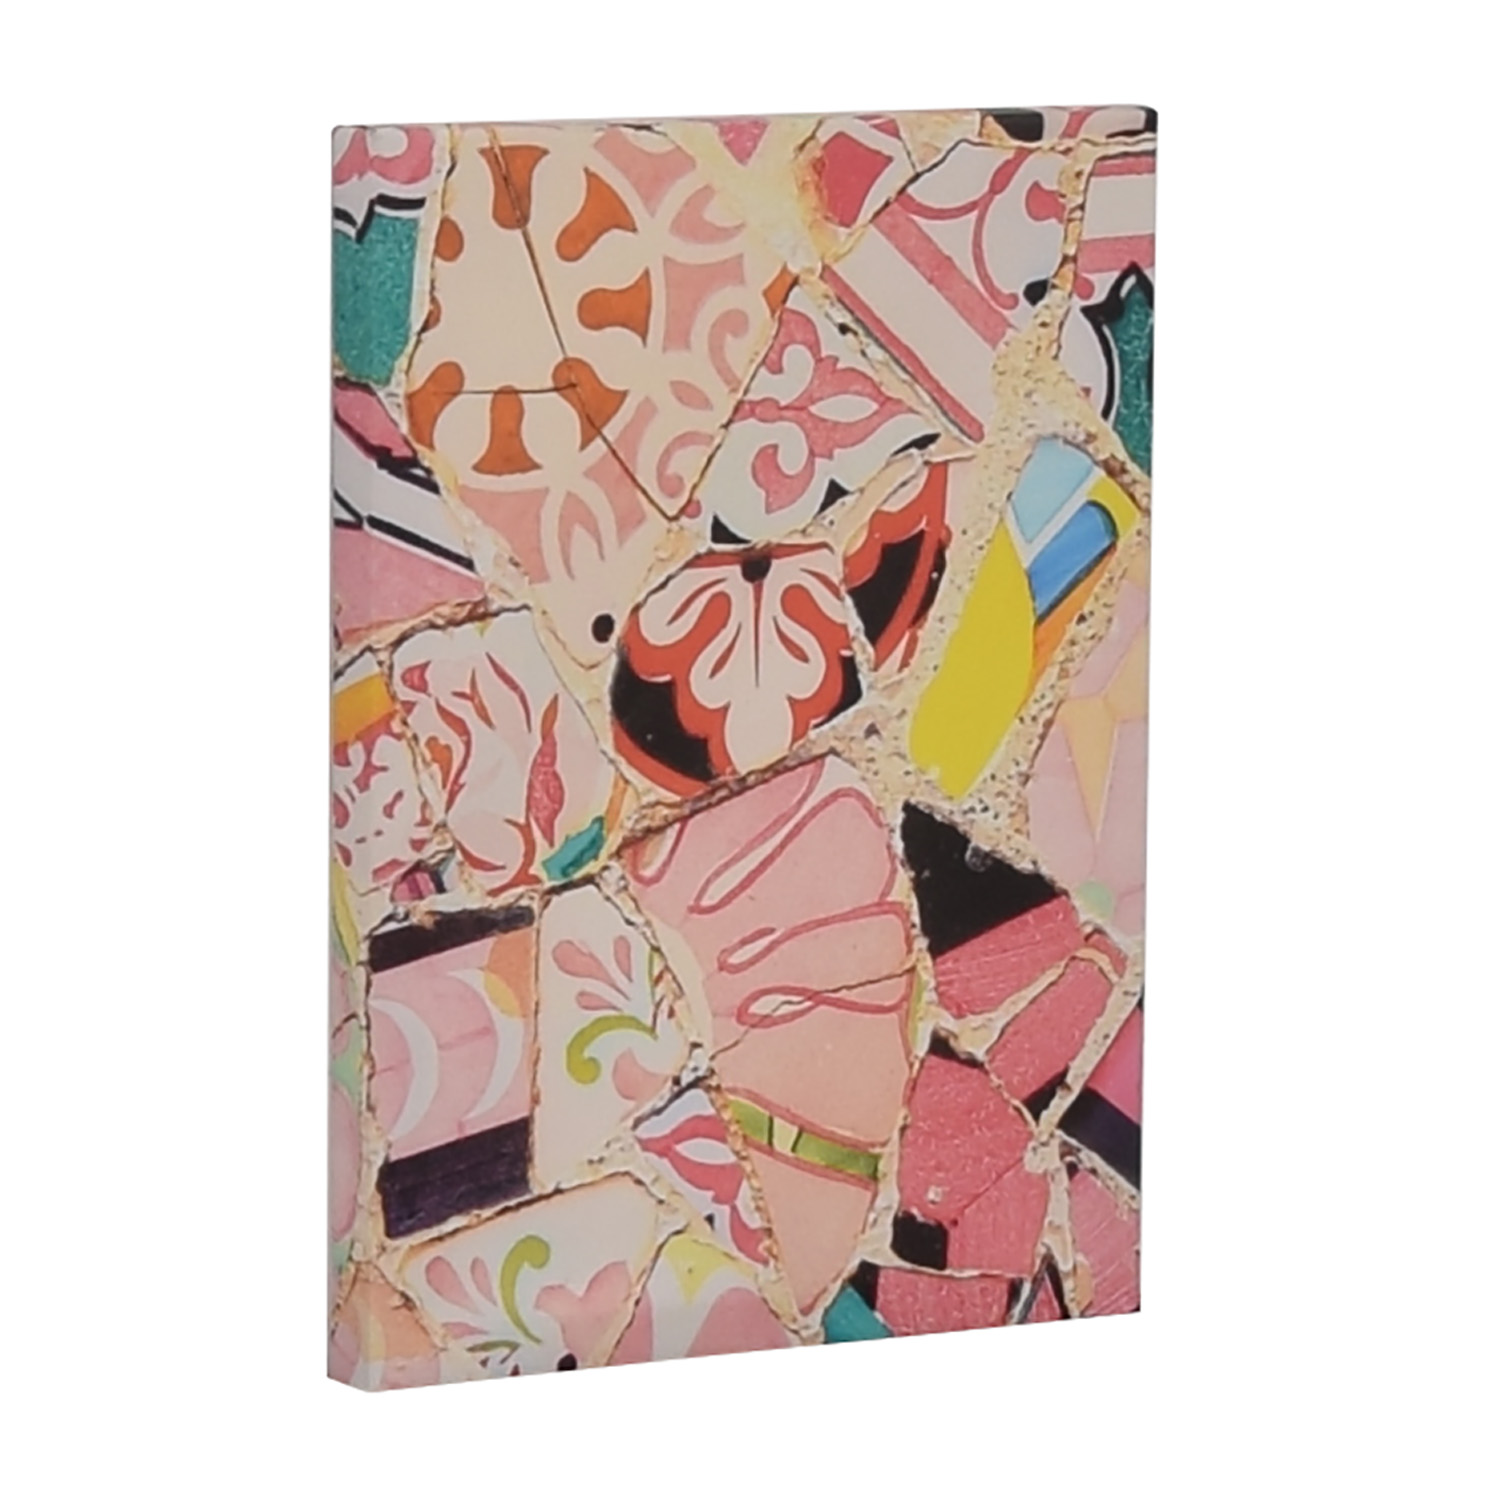 buy  Multi-Colored Crushed Tile Print online